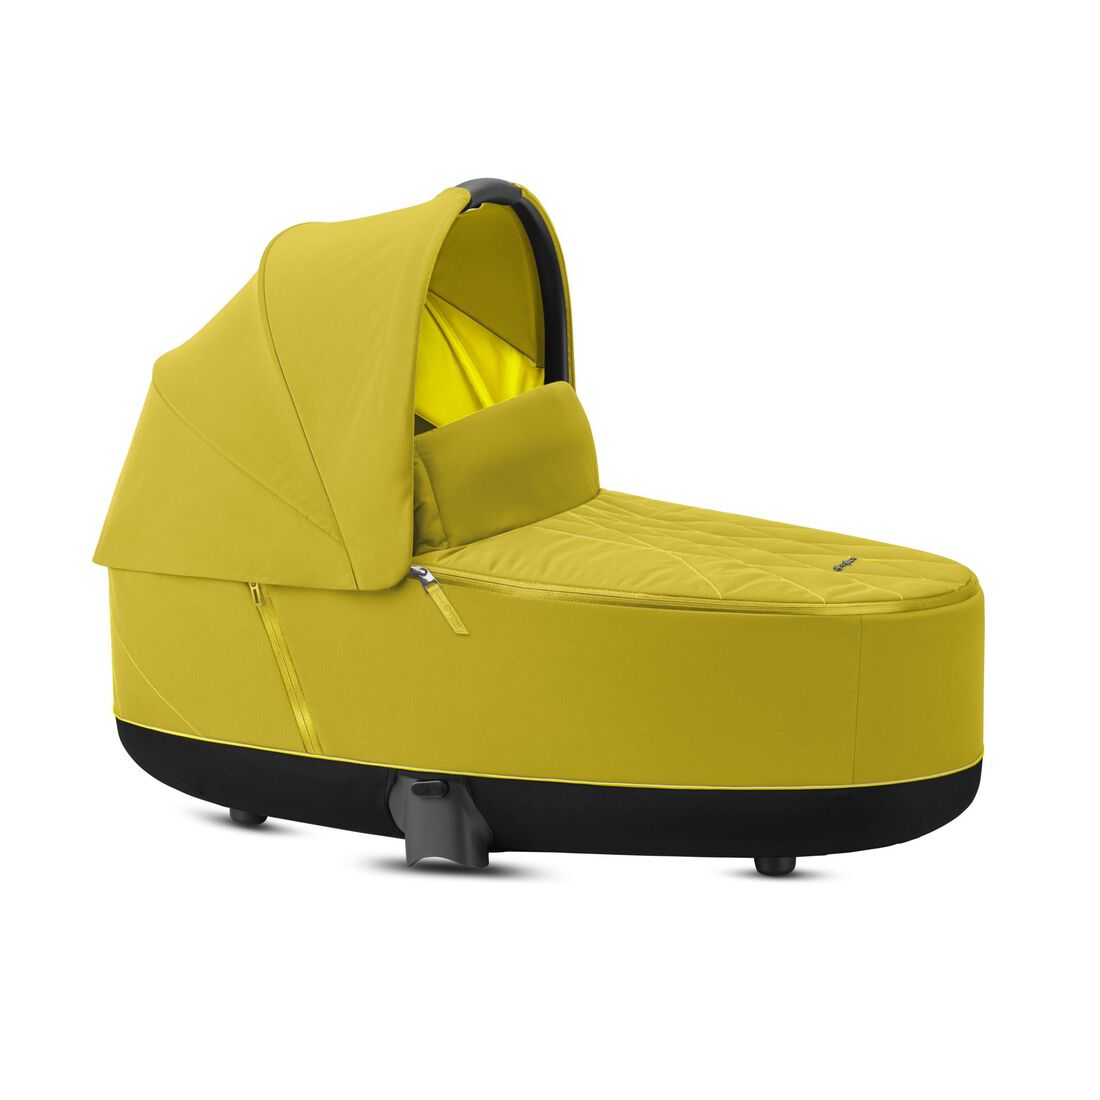 CYBEX Priam Lux Carry Cot - Mustard Yellow in Mustard Yellow large image number 1